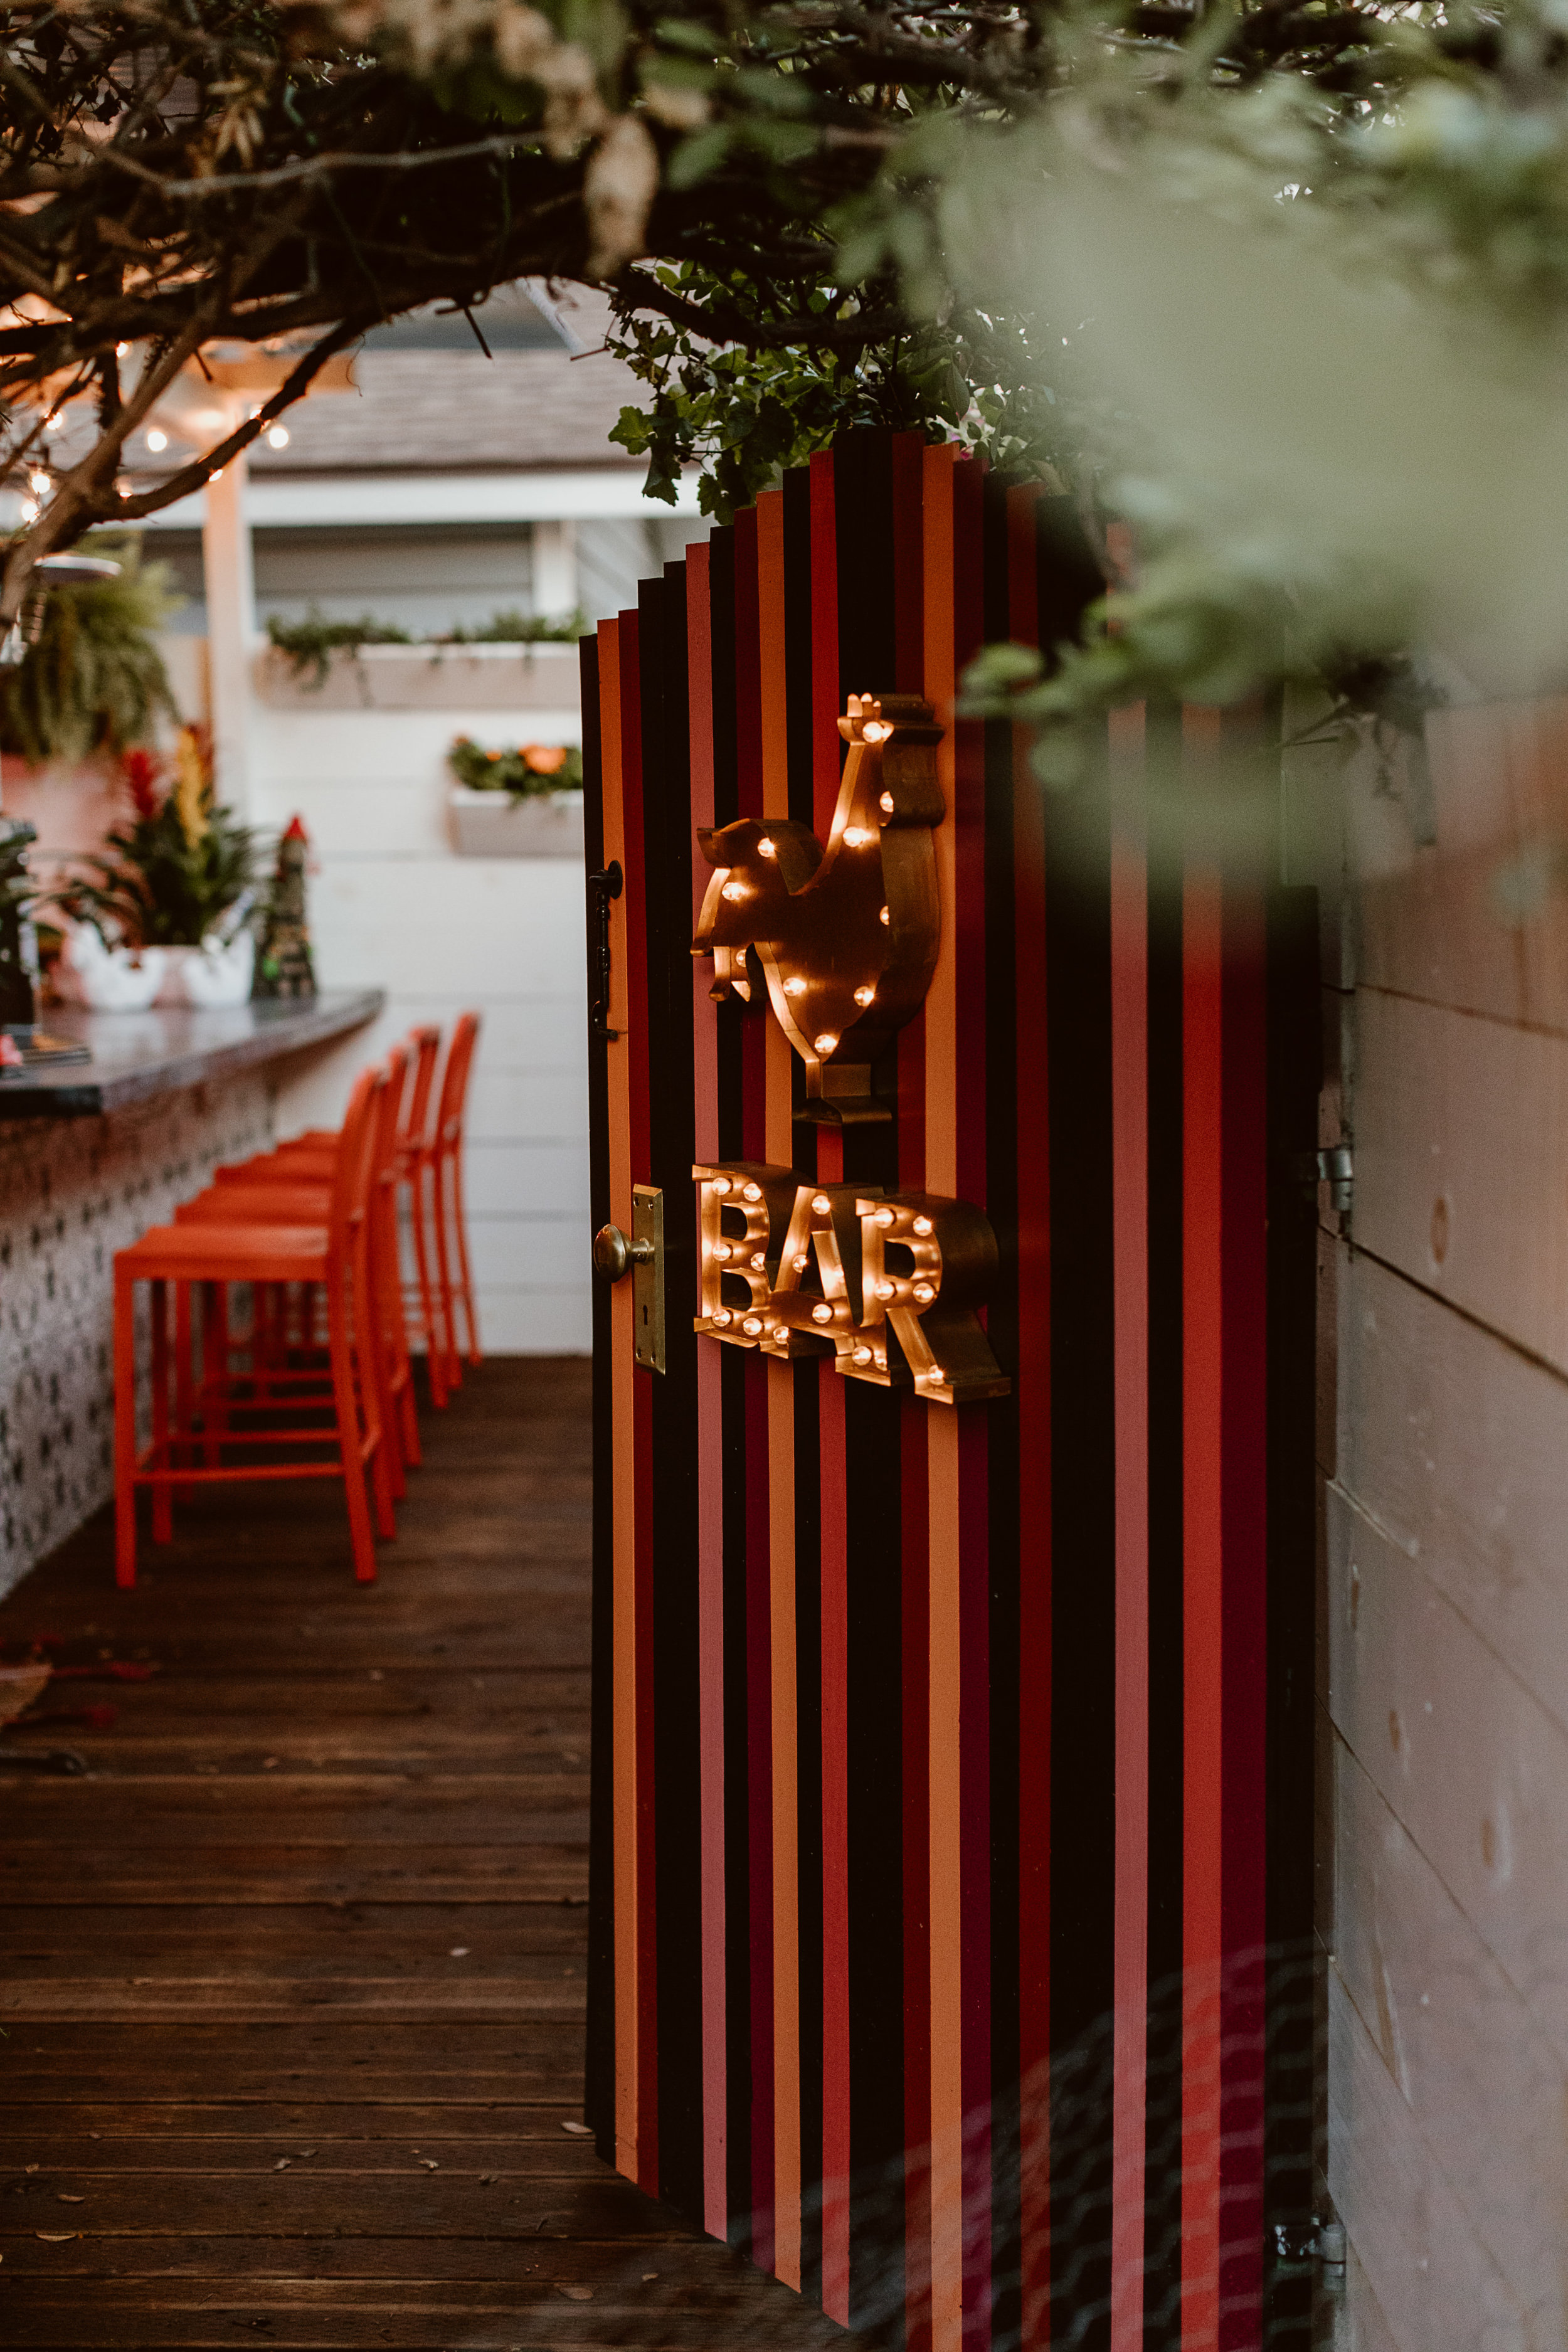 Holiday Tiki Party at the DWC Chicken Bar with Havana Club Rum | drinkingwithchickens.com